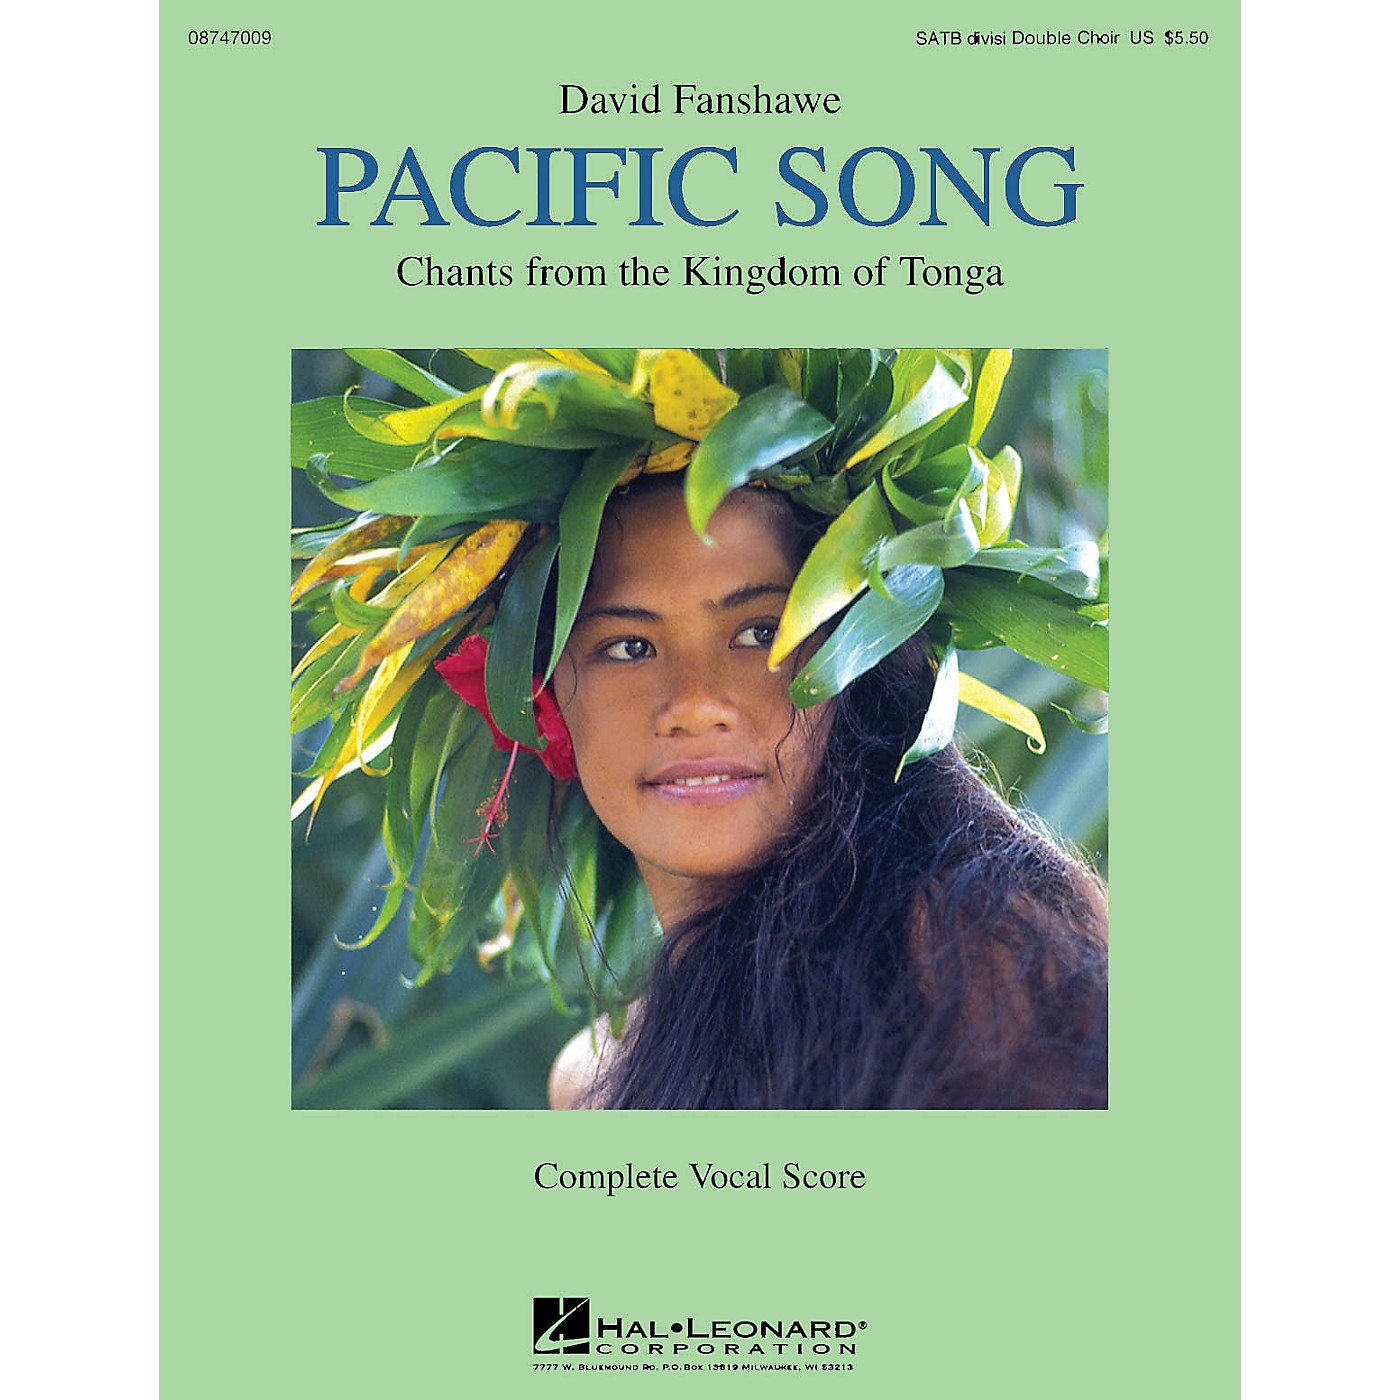 Hal Leonard Pacific Song (Chants from the Kingdom of Tonga) Double Choir SATB divisi composed by David Fanshawe thumbnail